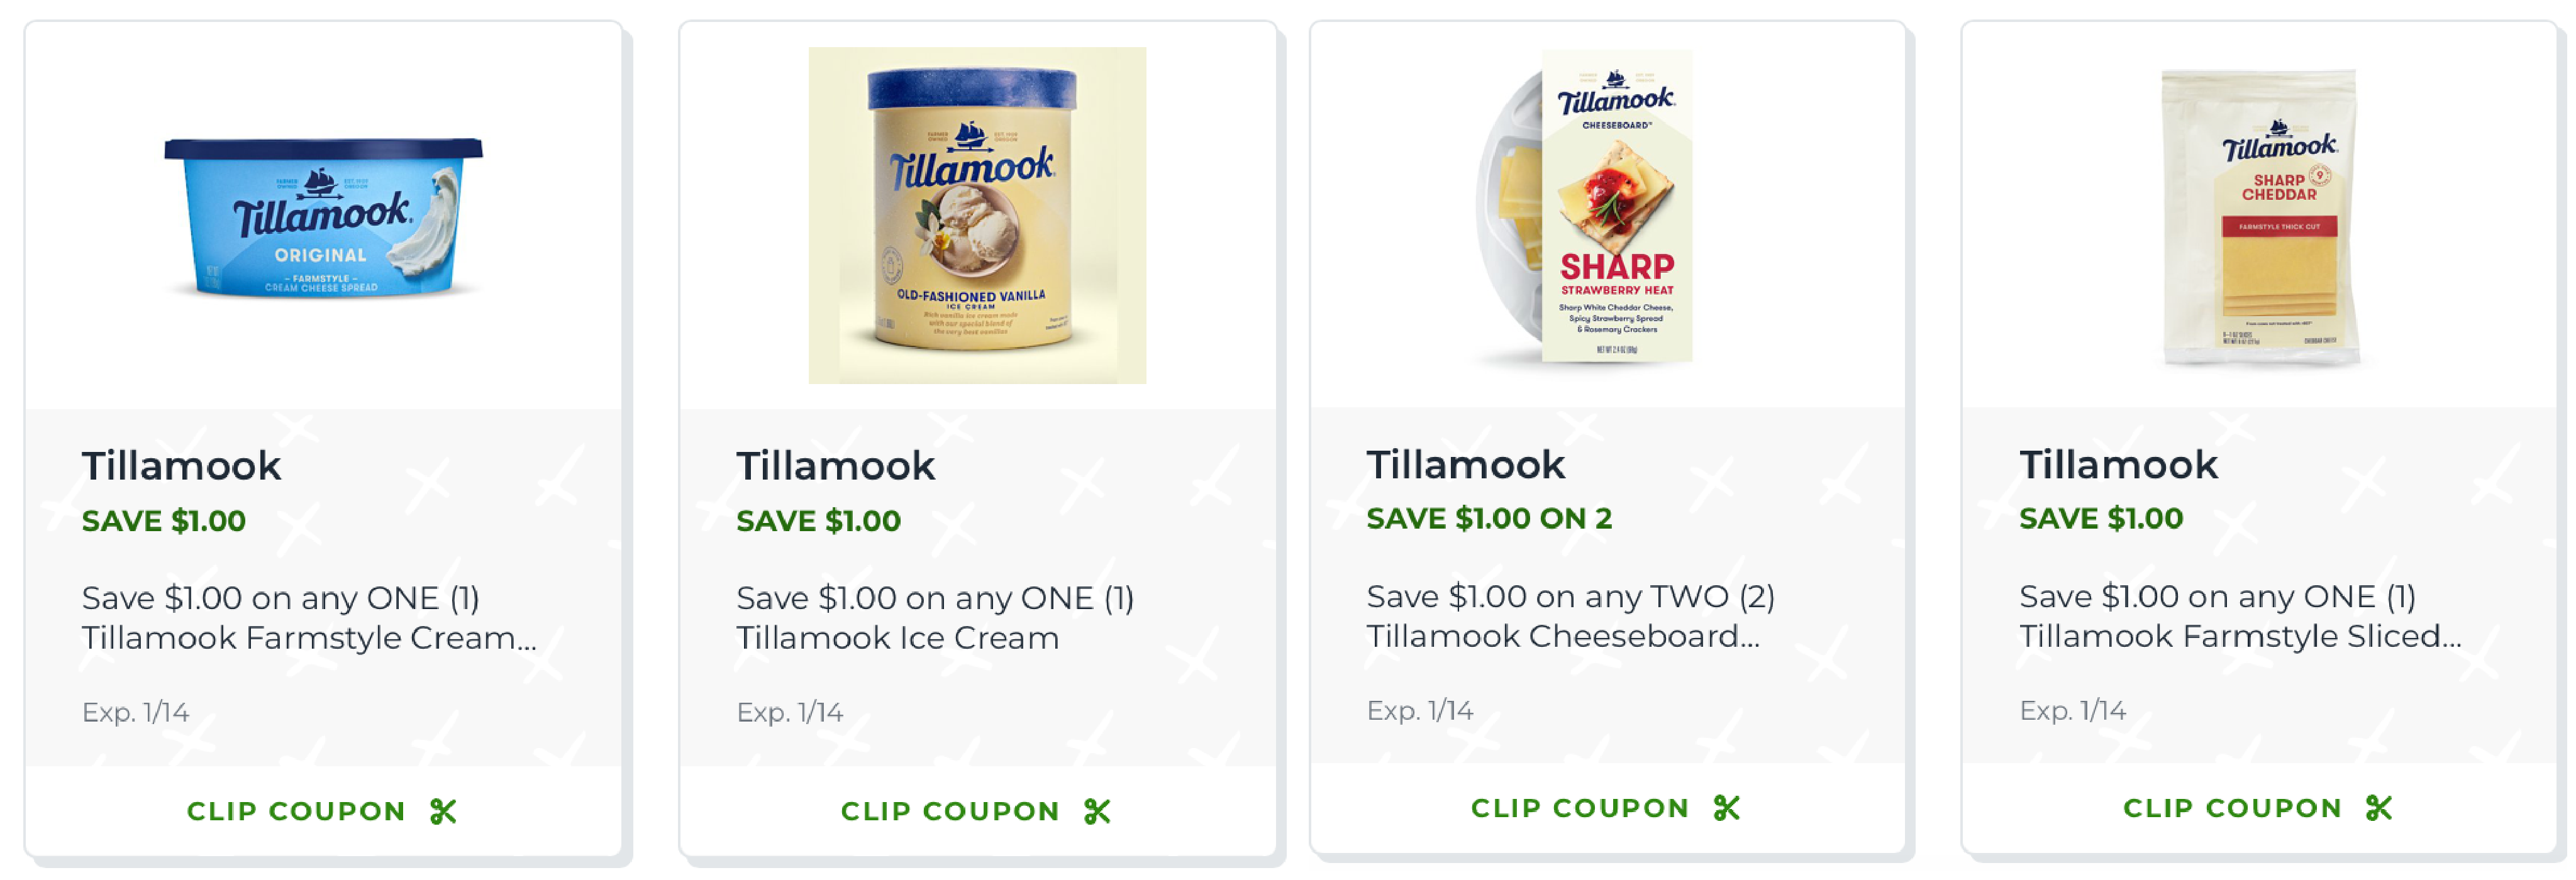 Holidays Made Easy With The Great Taste Of Tillamook - Save At Publix on I Heart Publix 2